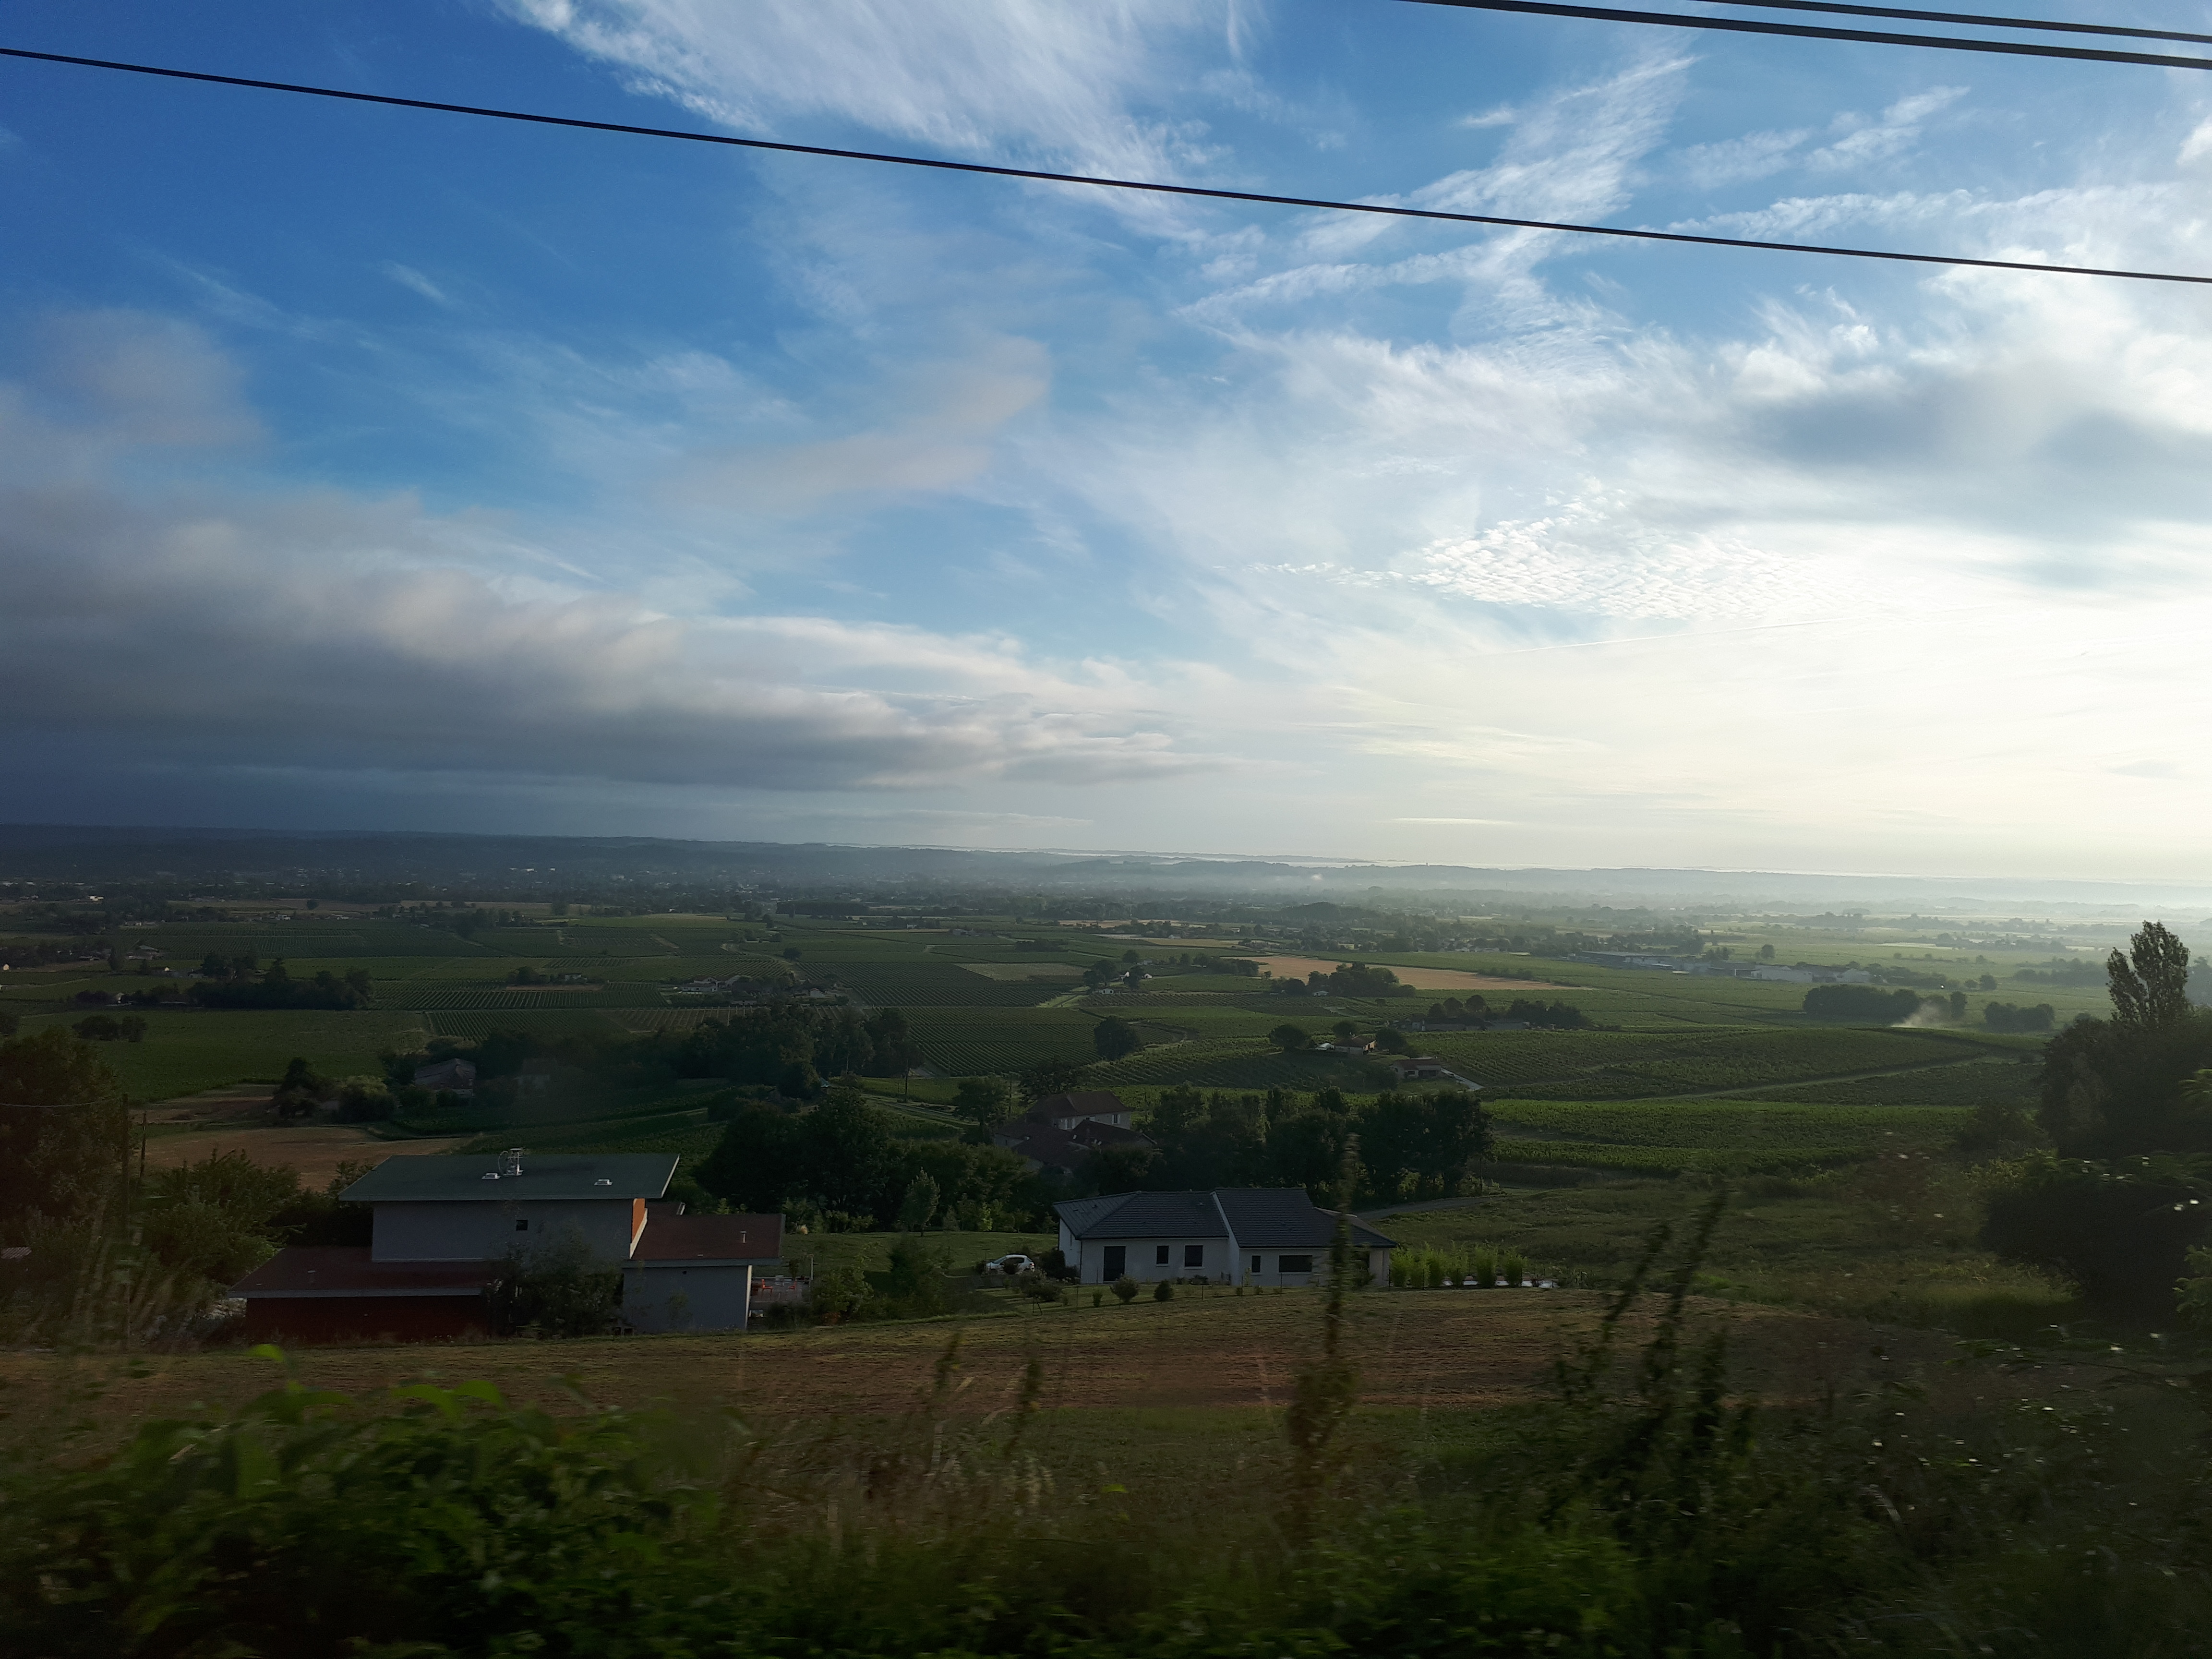 view across the Bergerac plains in the early morning